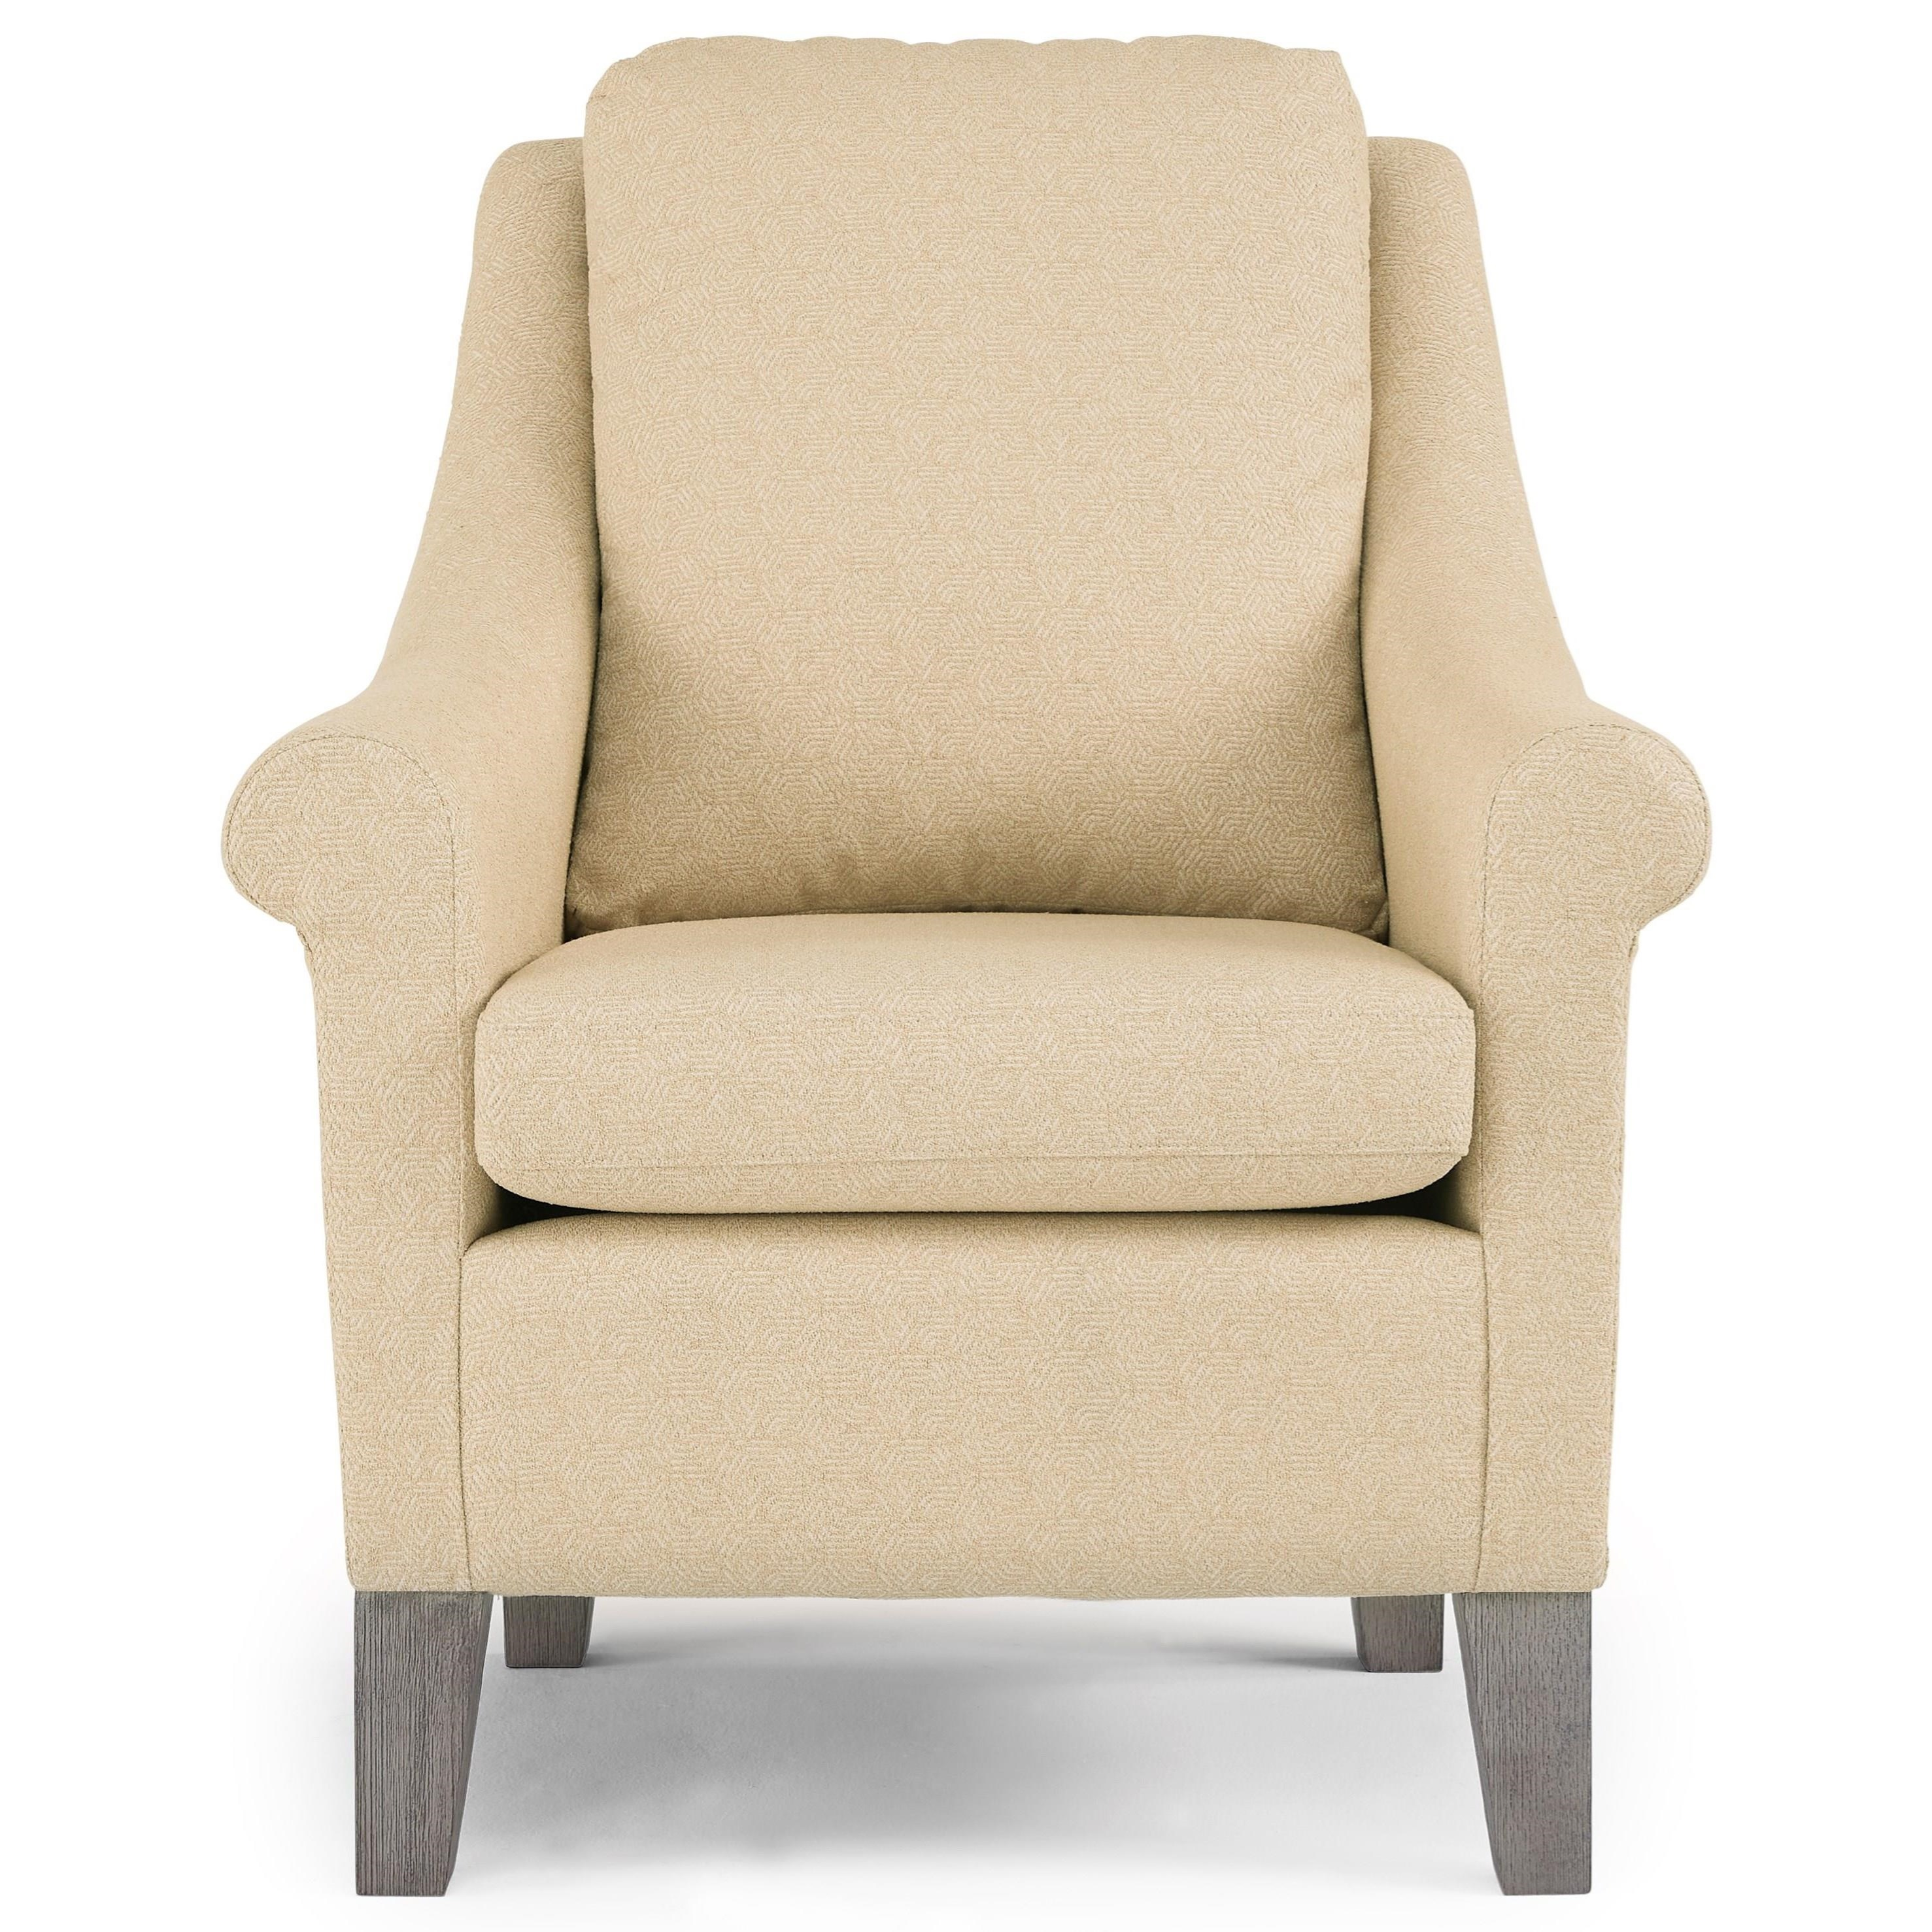 Charmes Club Chair by Best Home Furnishings at Baer's Furniture